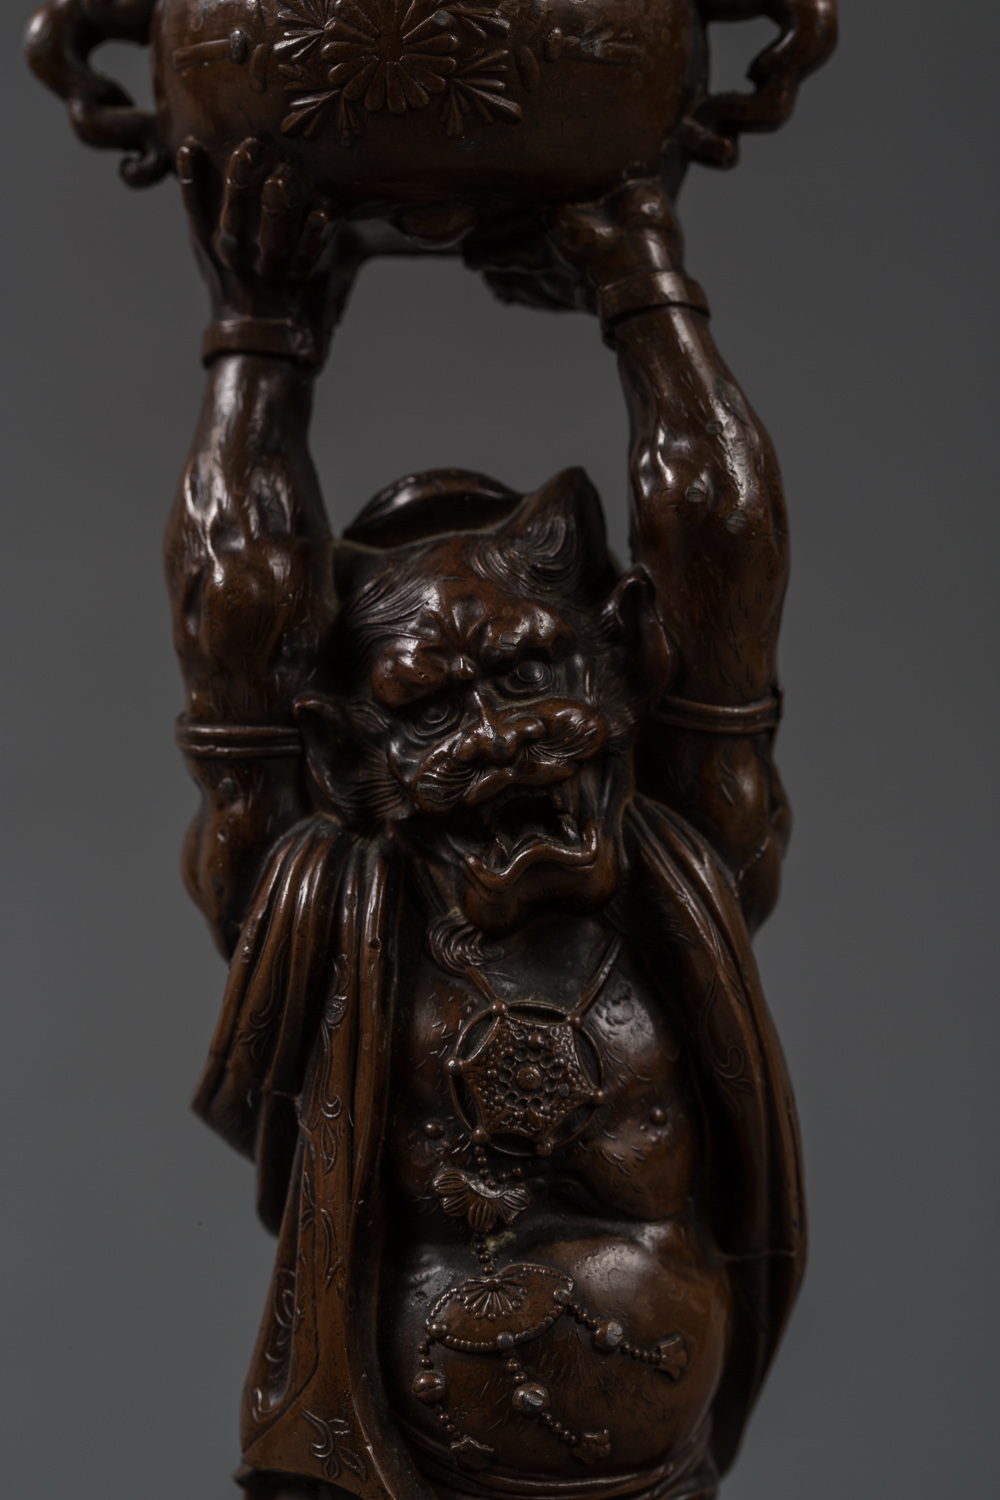 Japanese Pair of Meiji-Style Patinated Bronze Onis